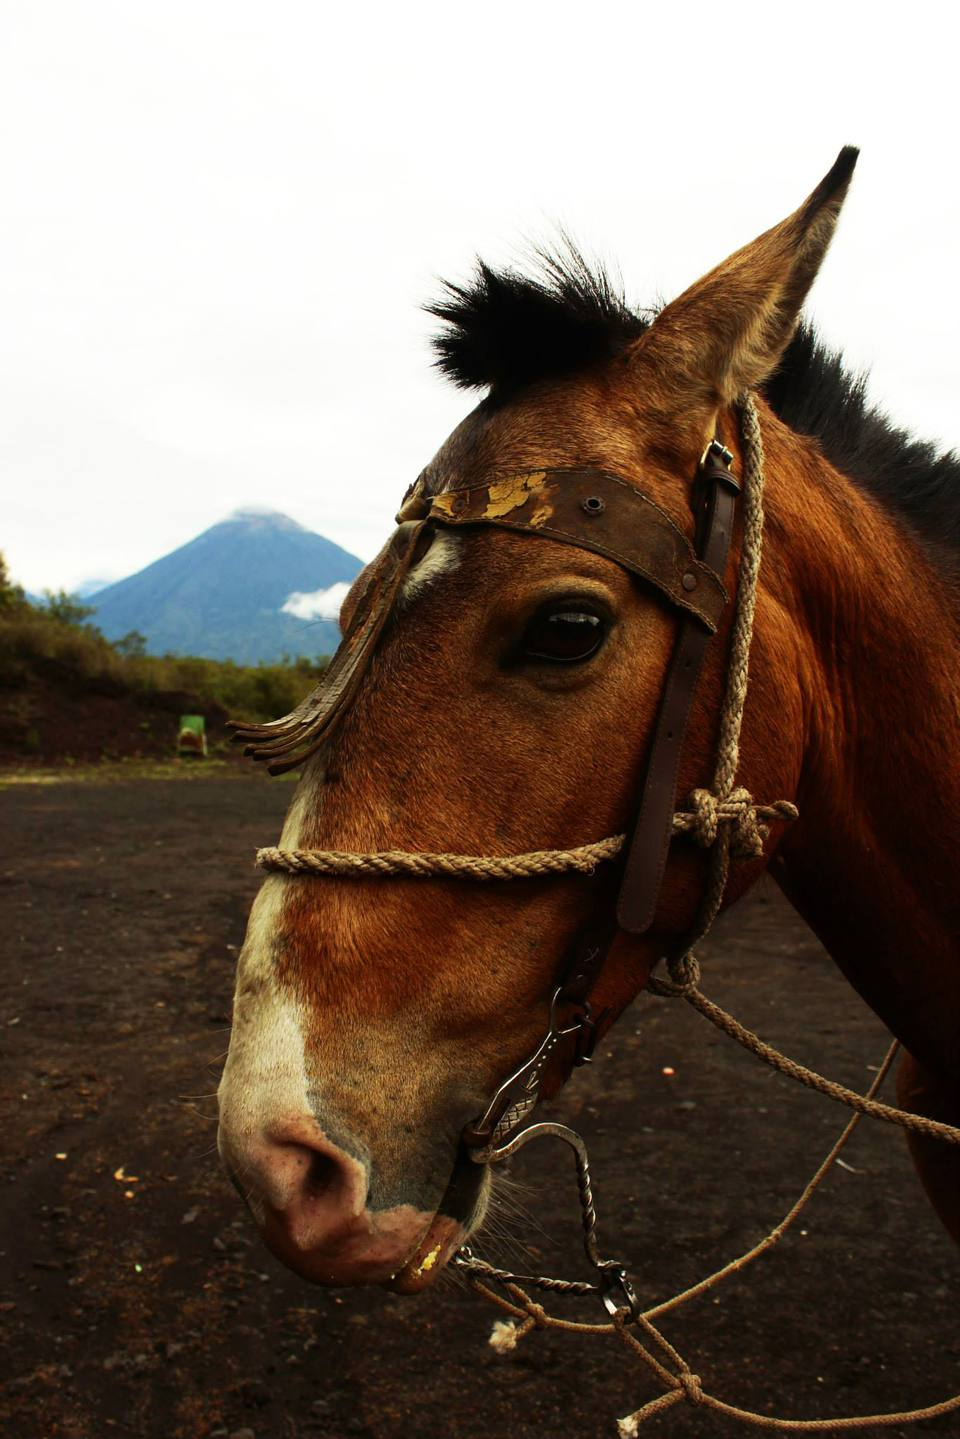 a horse with a volcano in the background in Guatemala